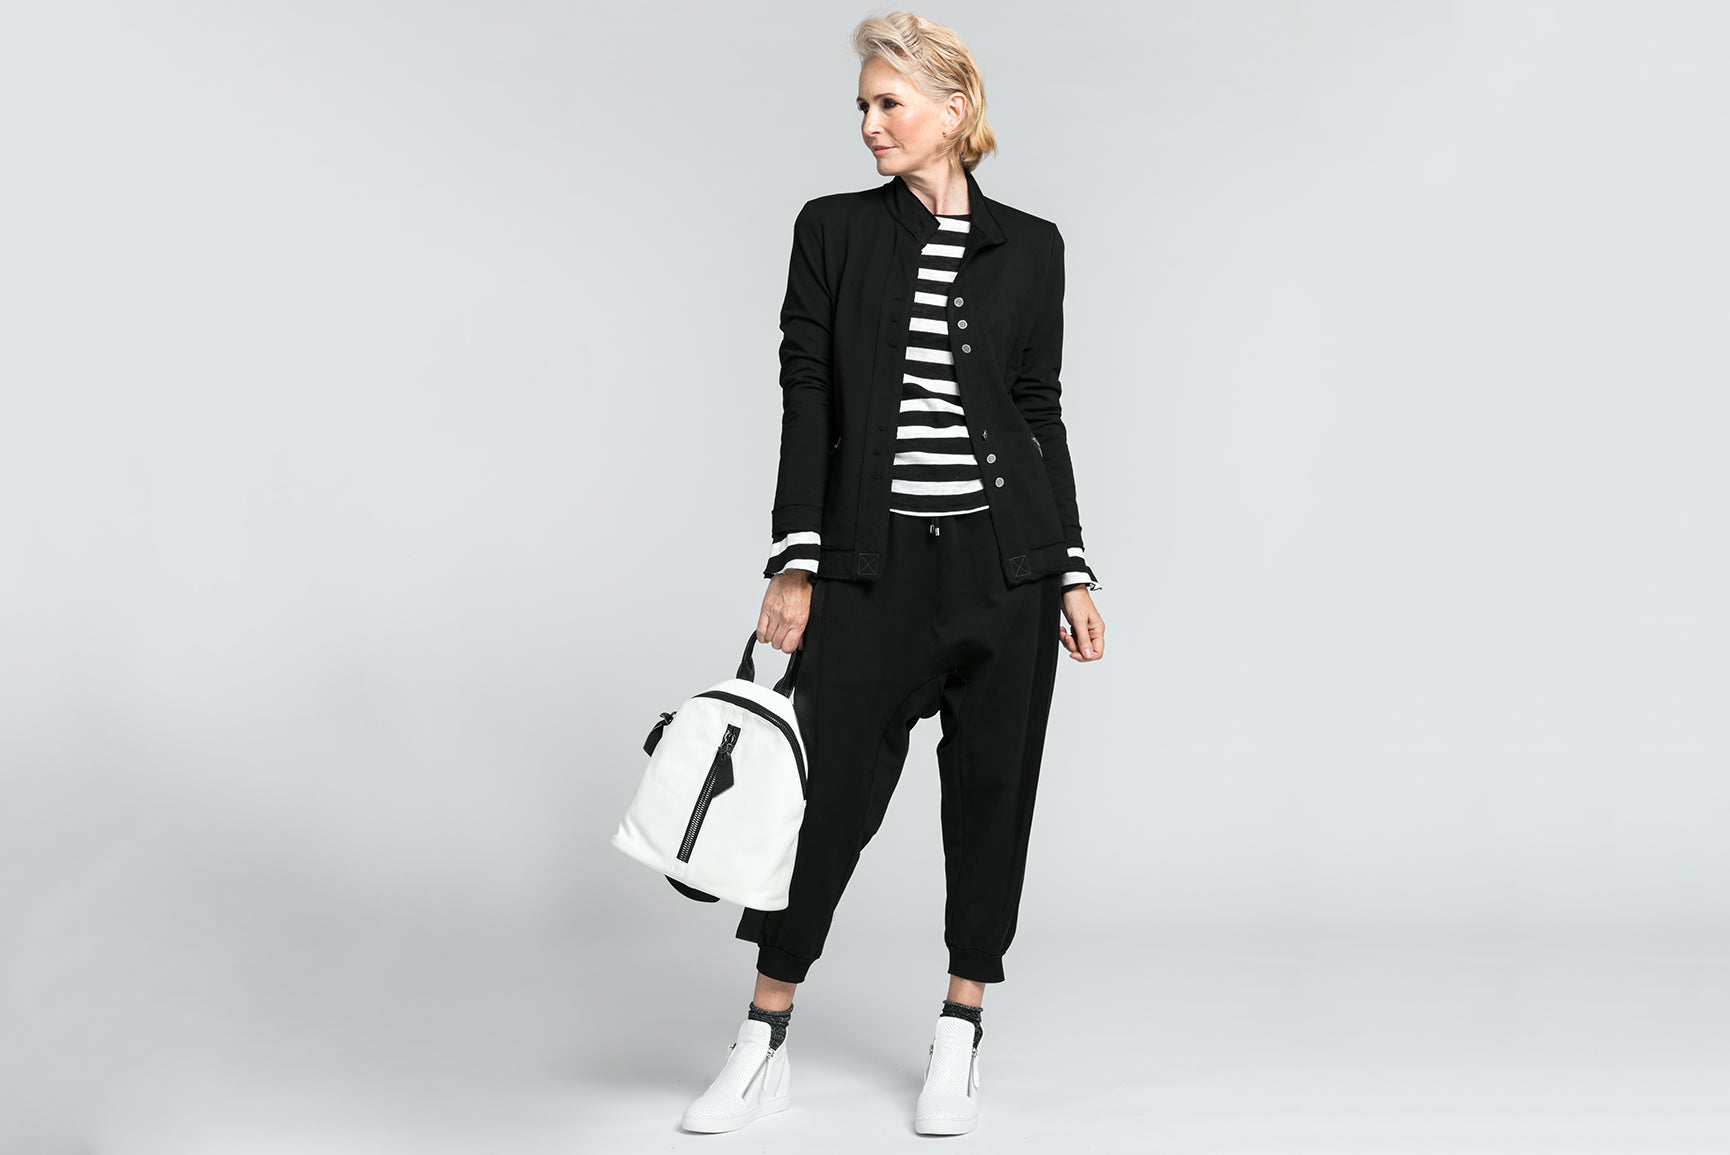 Angelou Jacket, Repertoire NZ